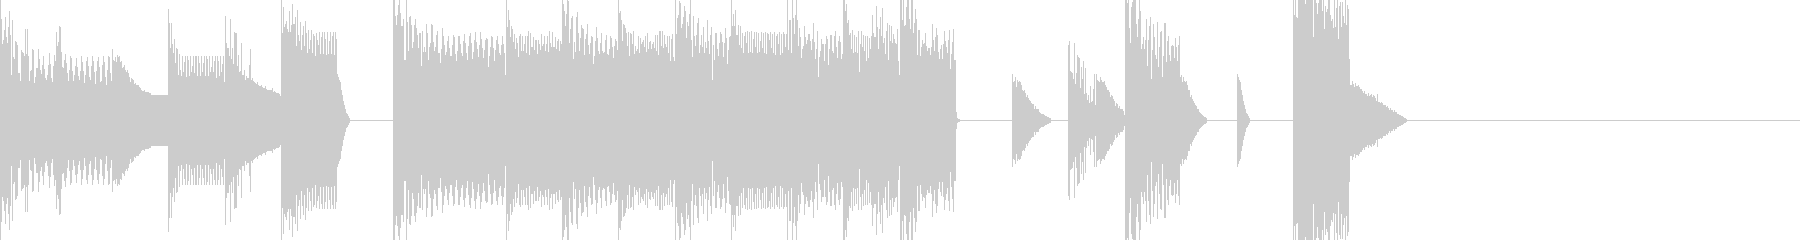 Game Clear Jingle-style Chiptune's unreproduced waveform